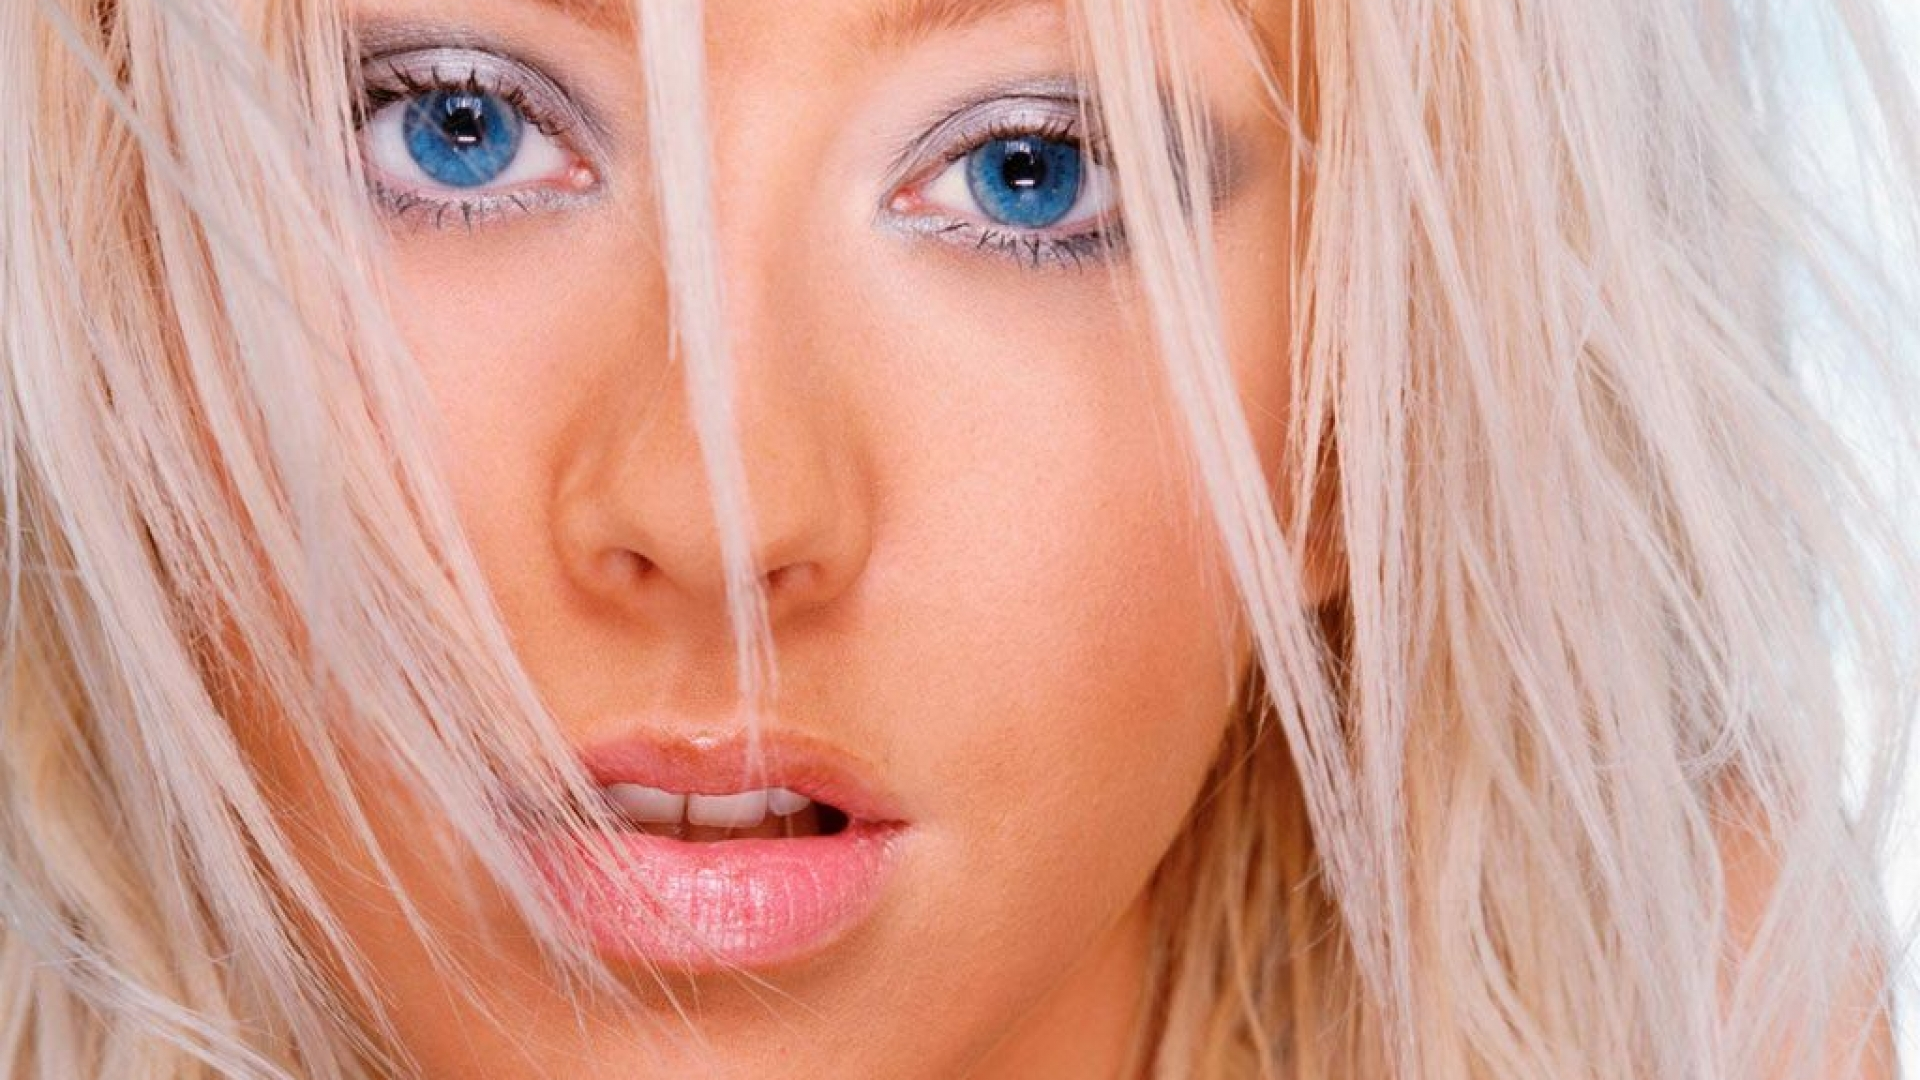 Christina Aguilera Face Wallpaper